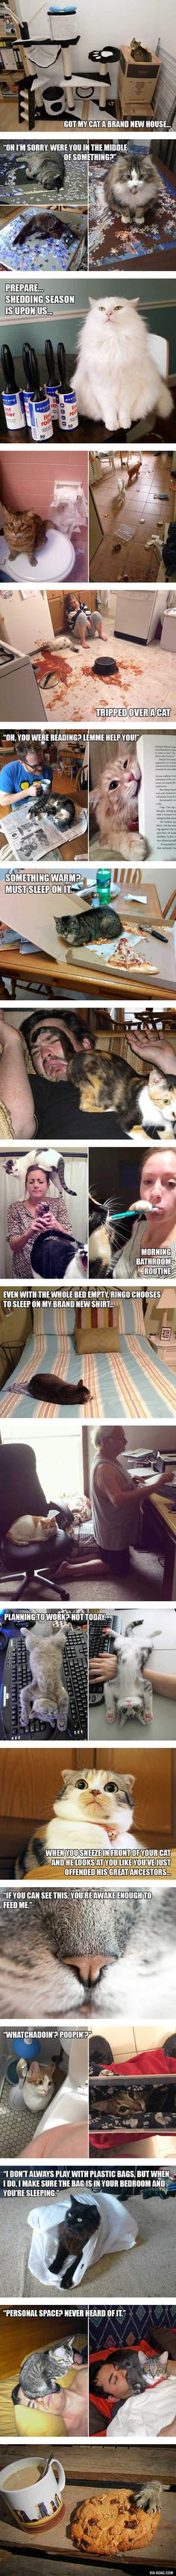 Funny pictures about Hilarious Struggles Only Cat Owners Will Understand. Oh, and cool pics about Hilarious Struggles Only Cat Owners Will Understand. Also, Hilarious Struggles Only Cat Owners Will Understand photos. Cute Funny Animals, Funny Animal Pictures, Funny Cute, Cute Cats, Funny Kitties, Funny Dogs, Funny Horses, Crazy Cat Lady, Crazy Cats